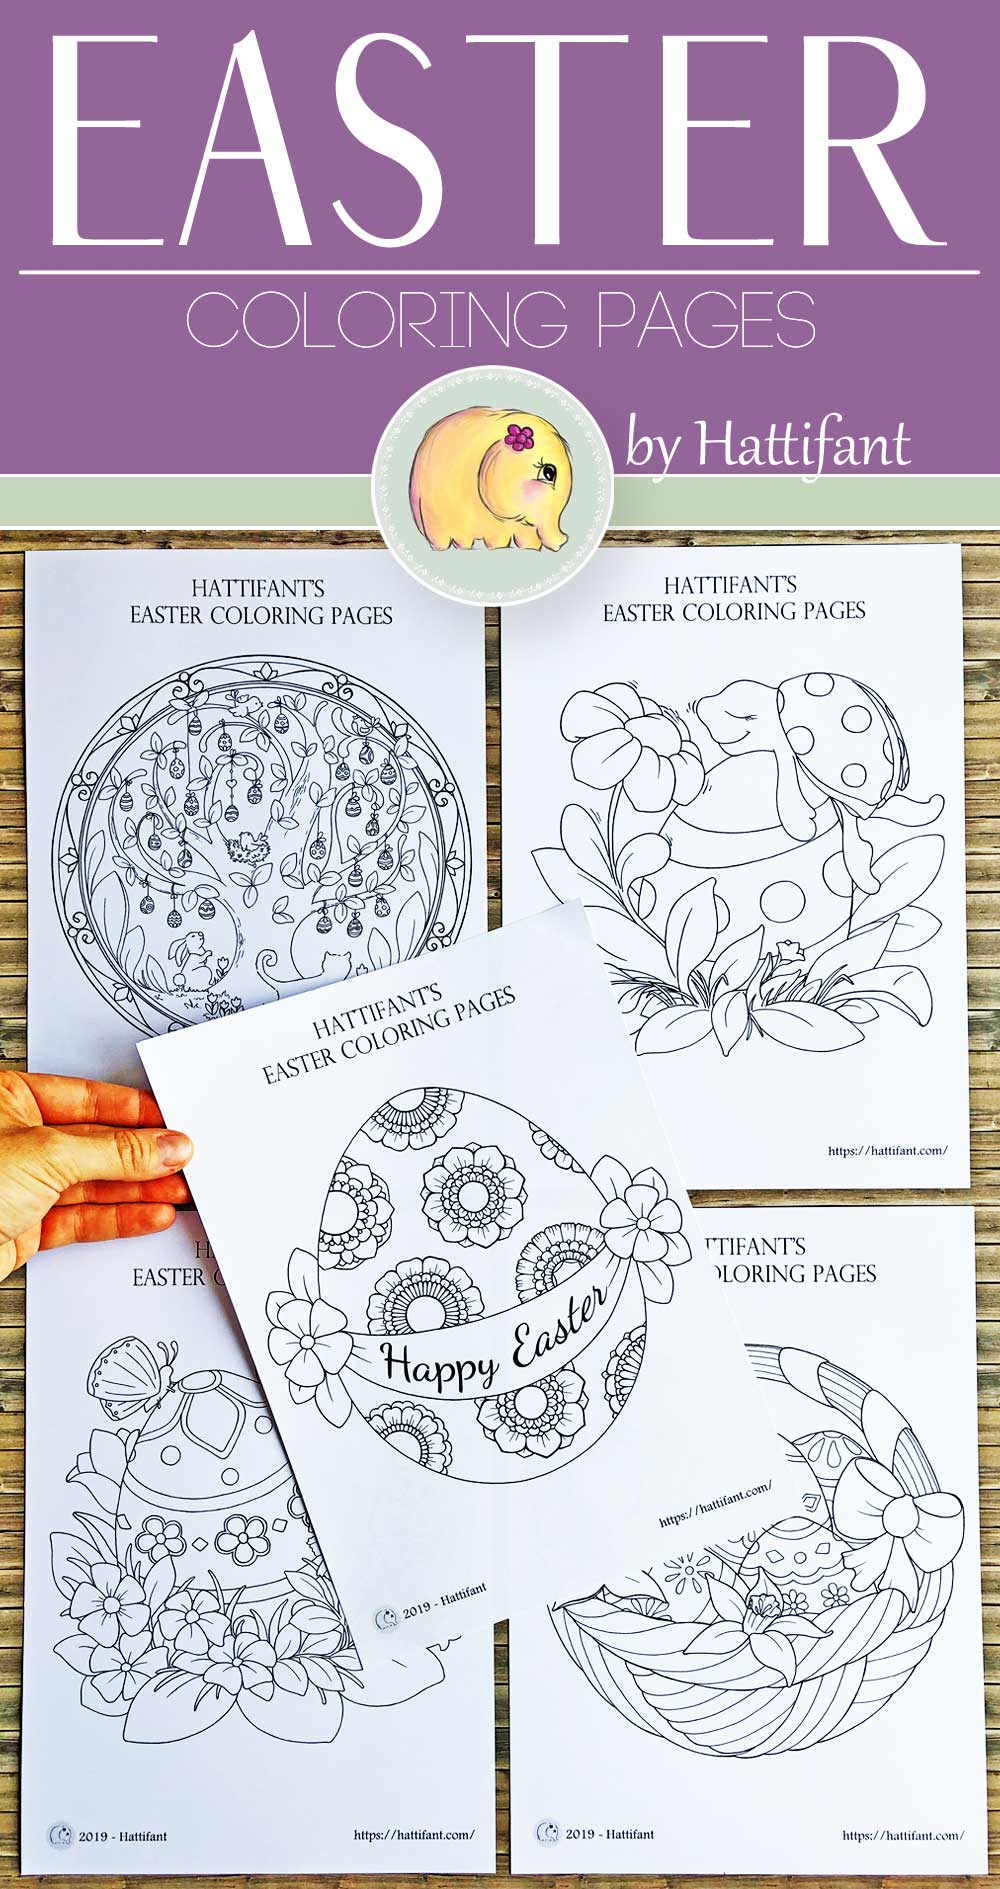 Hattifant's Easter Coloring Page Scenes